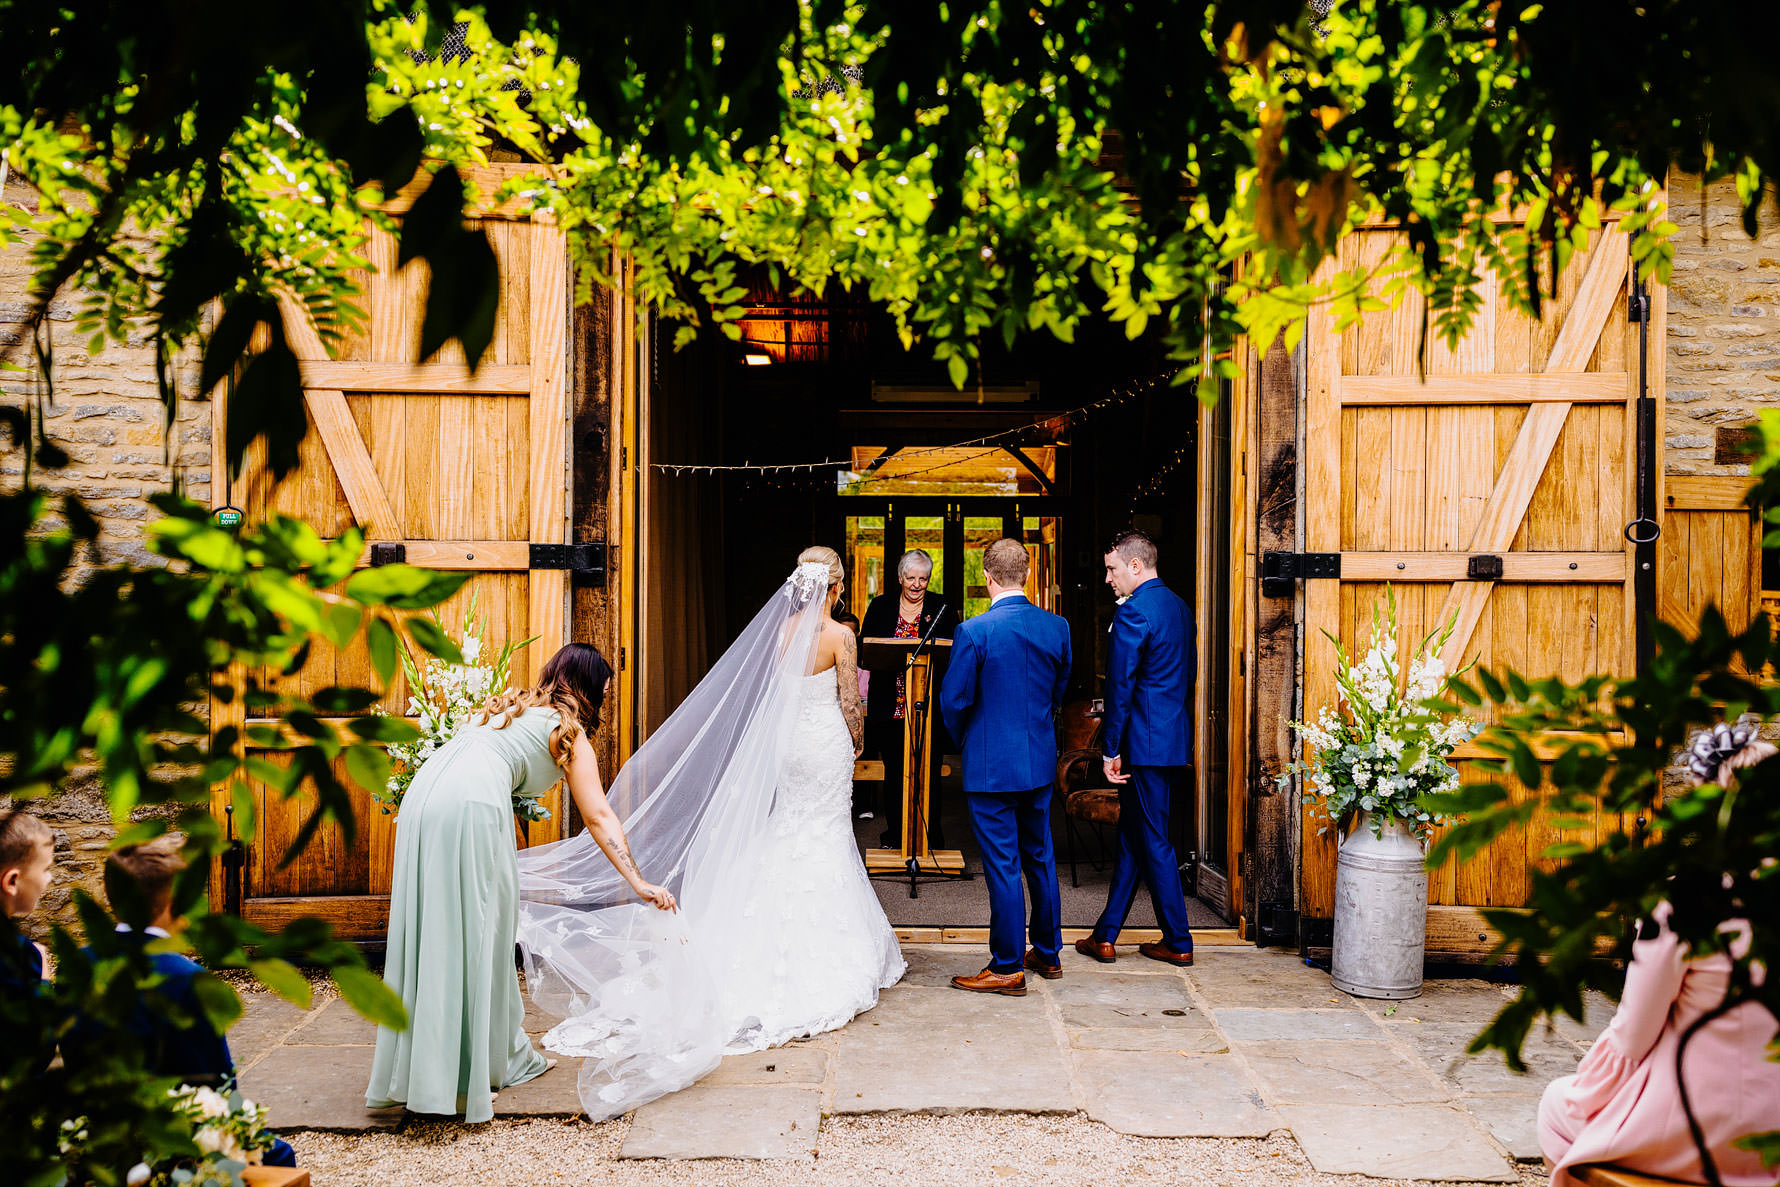 a bridesmaid perfects the veil